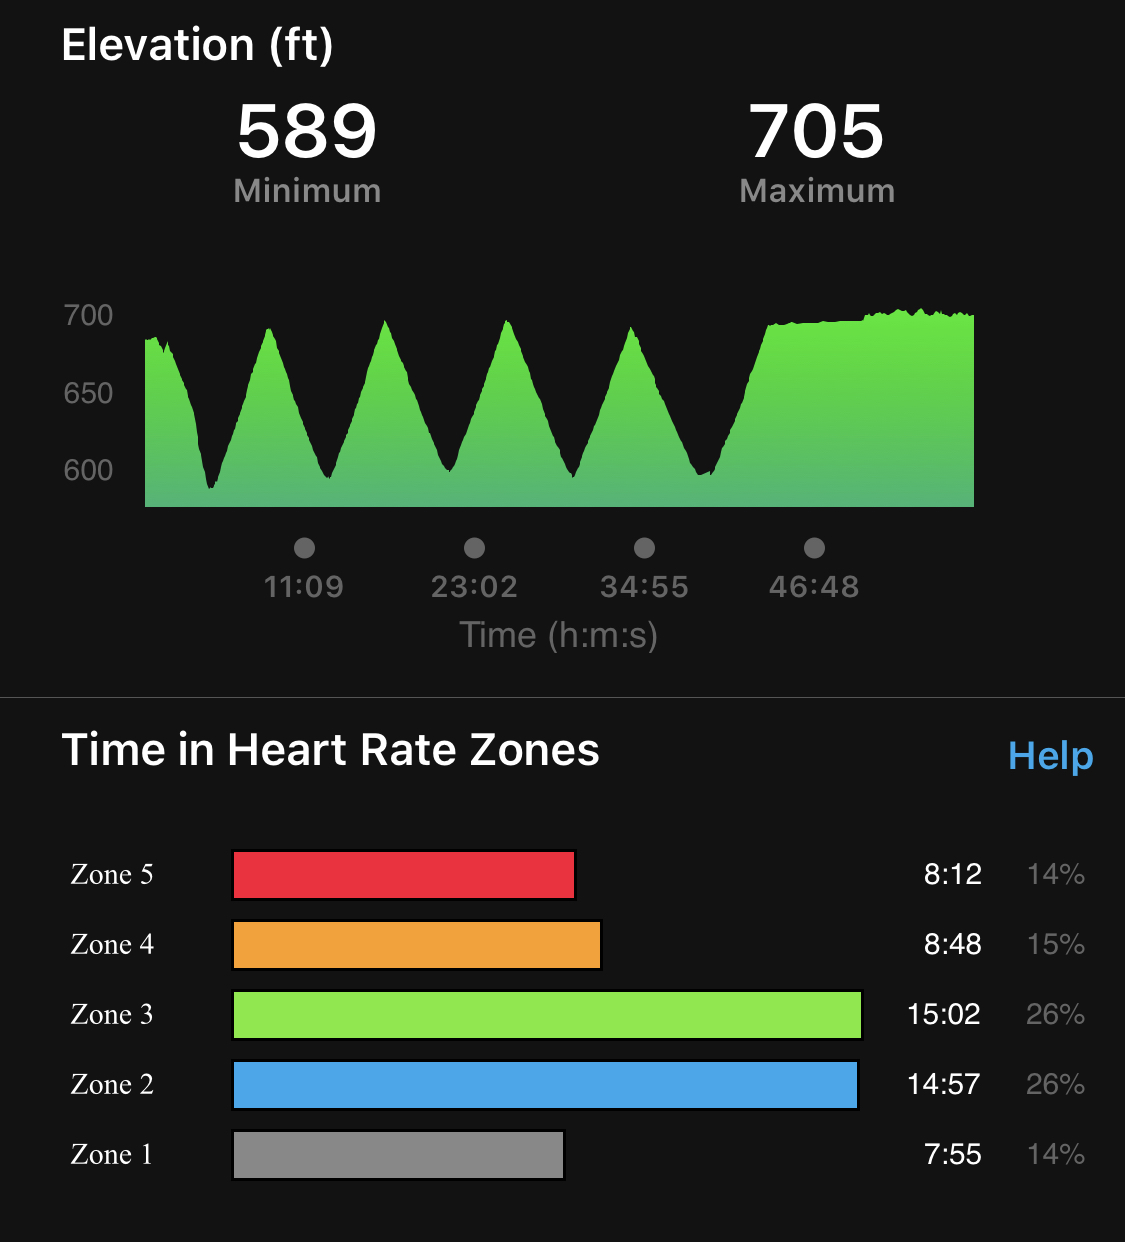 iPhone Screenshot from Garmin.  Elevation chart on top shows 5 hill climbs of approximately 100' gain over 1/2 mile and Time in Heart Rate Zones.  Zone 5  for 8 mins 12 seconds, Zone 4 fir 8 minutes 48 seconds, Zone 3 for 15 minutes 2 seconds, Zone 2 for 14 minutes 57 seconds and Zone 1 for 7 minutes 55 seconds